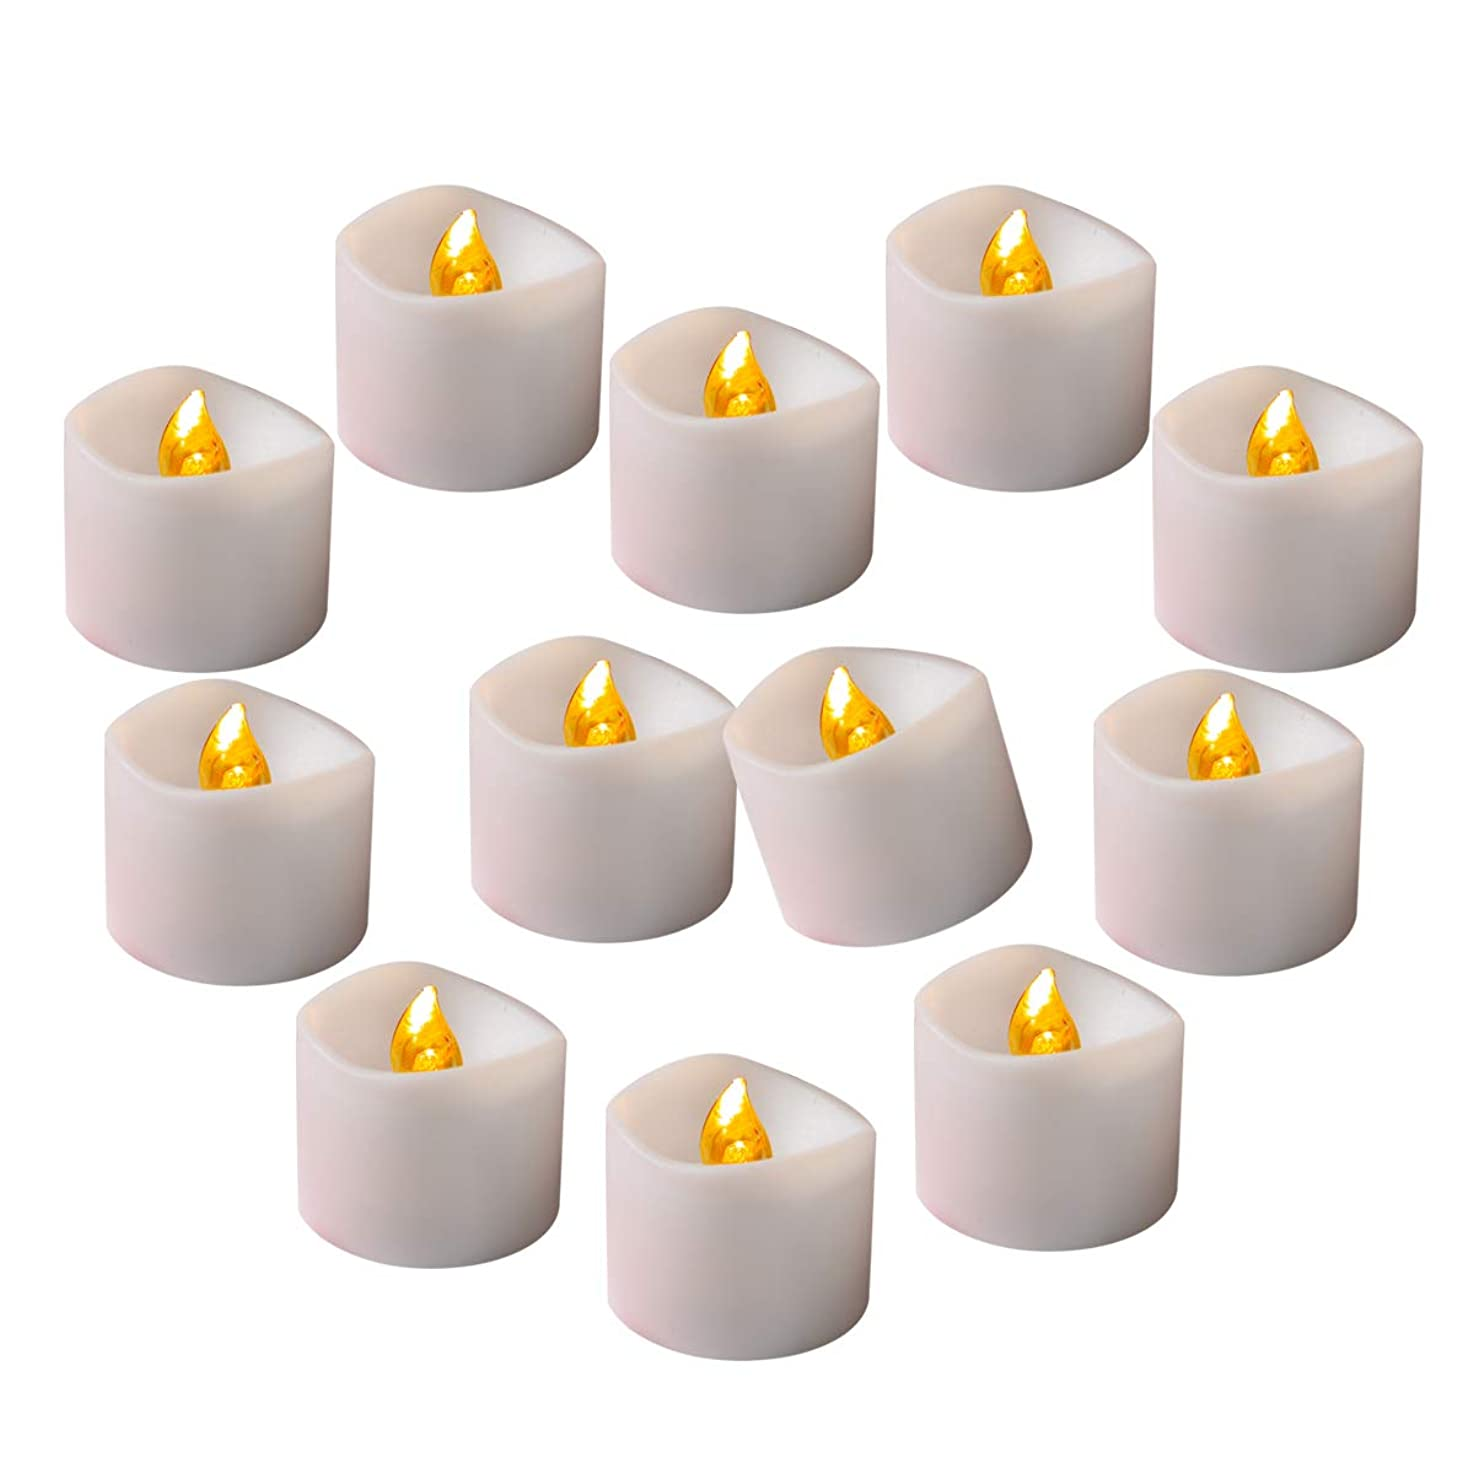 Cozeyat Flameless LED Tea Lights with Timer (6 Hours on, 18 Hours Off) Flickering Candles Amber Yellow 24pcs for Wedding Reception, Christmas Party, Window, Fireplace, Lantern, Craft Project wrhahlheeagbi1